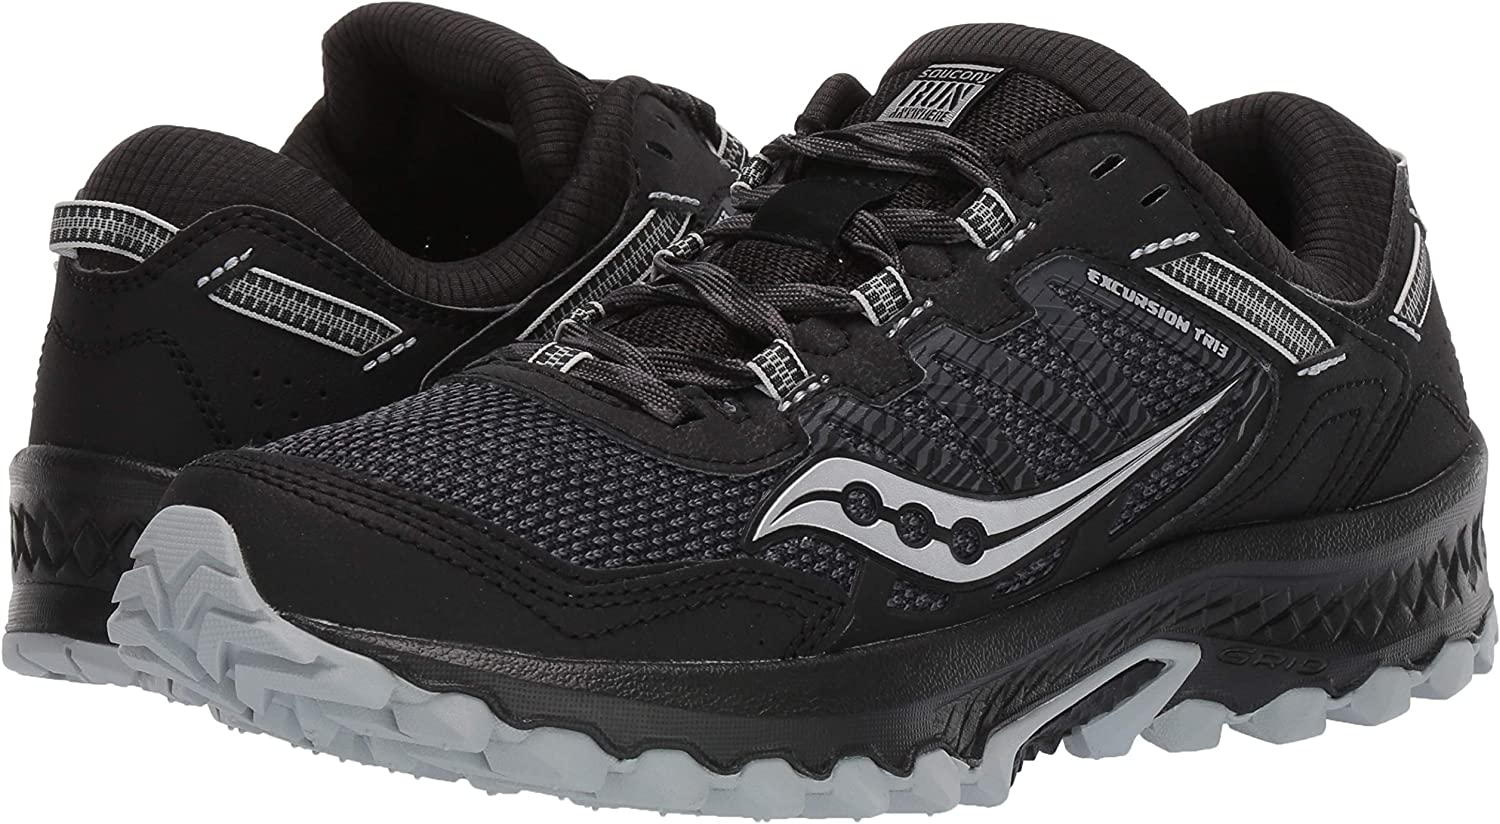 Saucony Excursion TR 13, Zapatillas de Trail Running para Hombre: Amazon.es: Zapatos y complementos